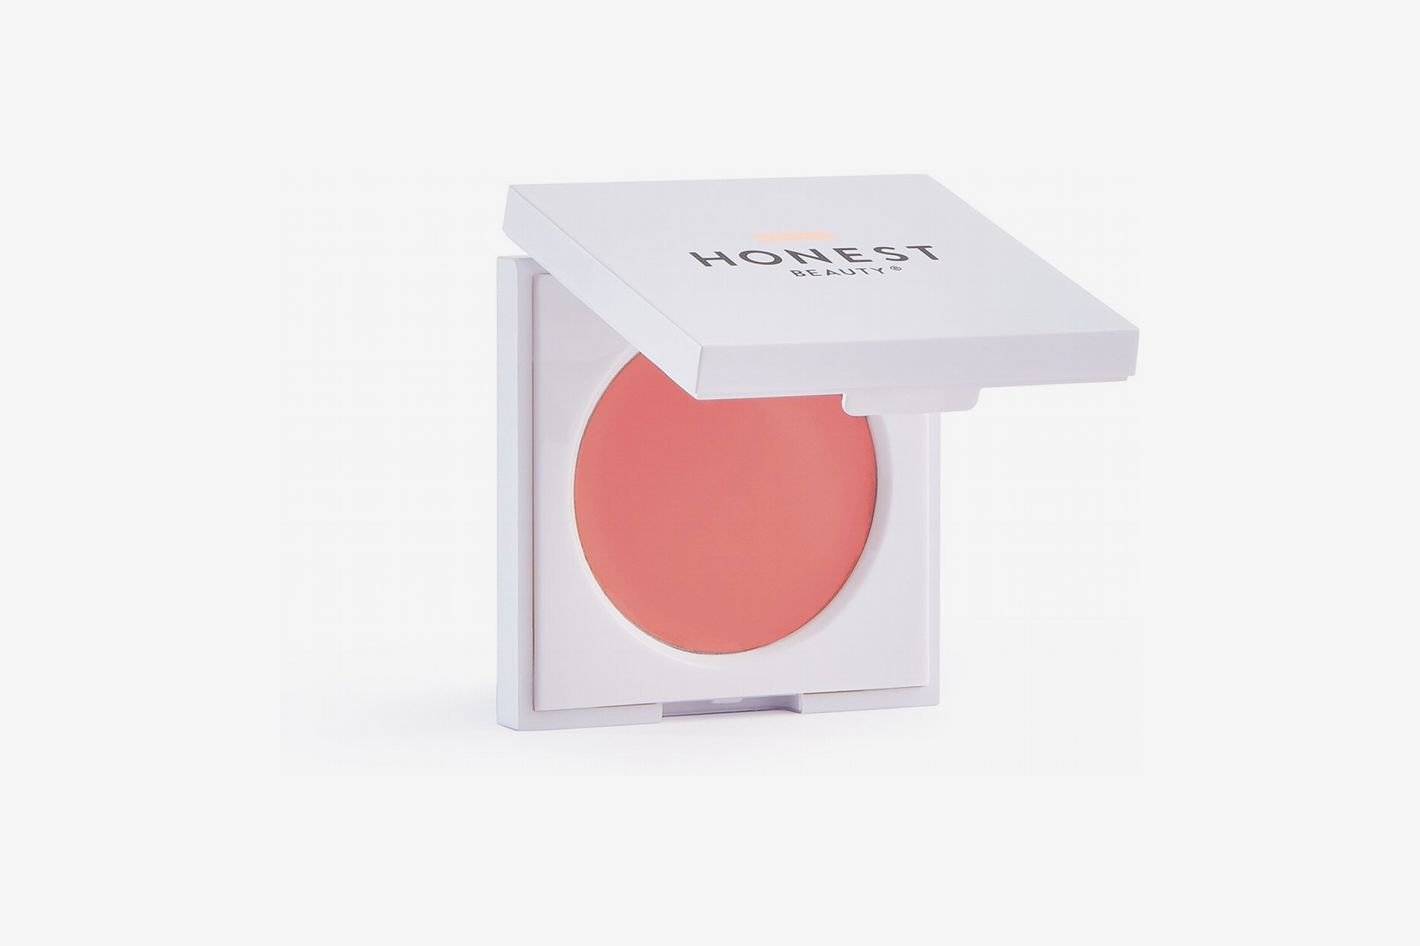 Honest Beauty Creme Cheek Blush, Peony Pink